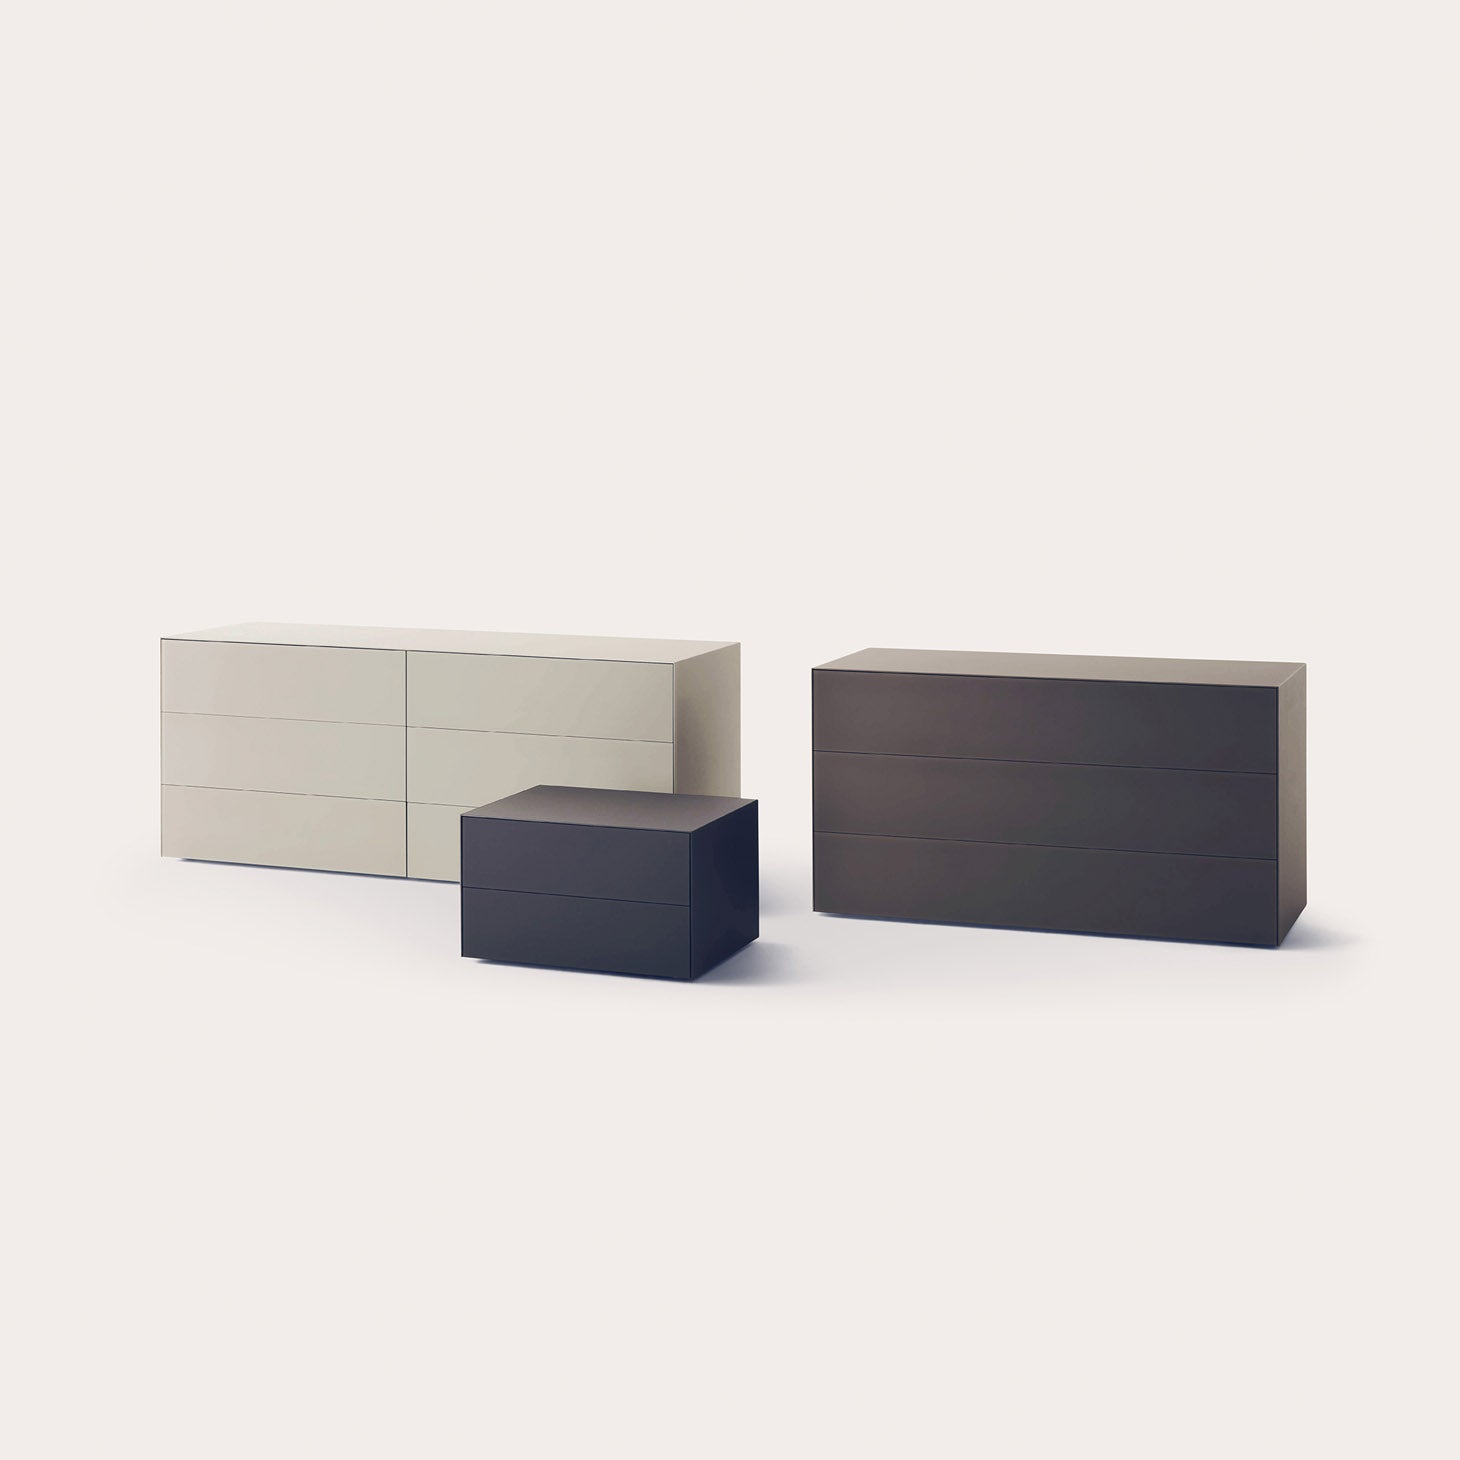 Magic Box Storage Piero Lissoni Designer Furniture Sku: 288-220-10021